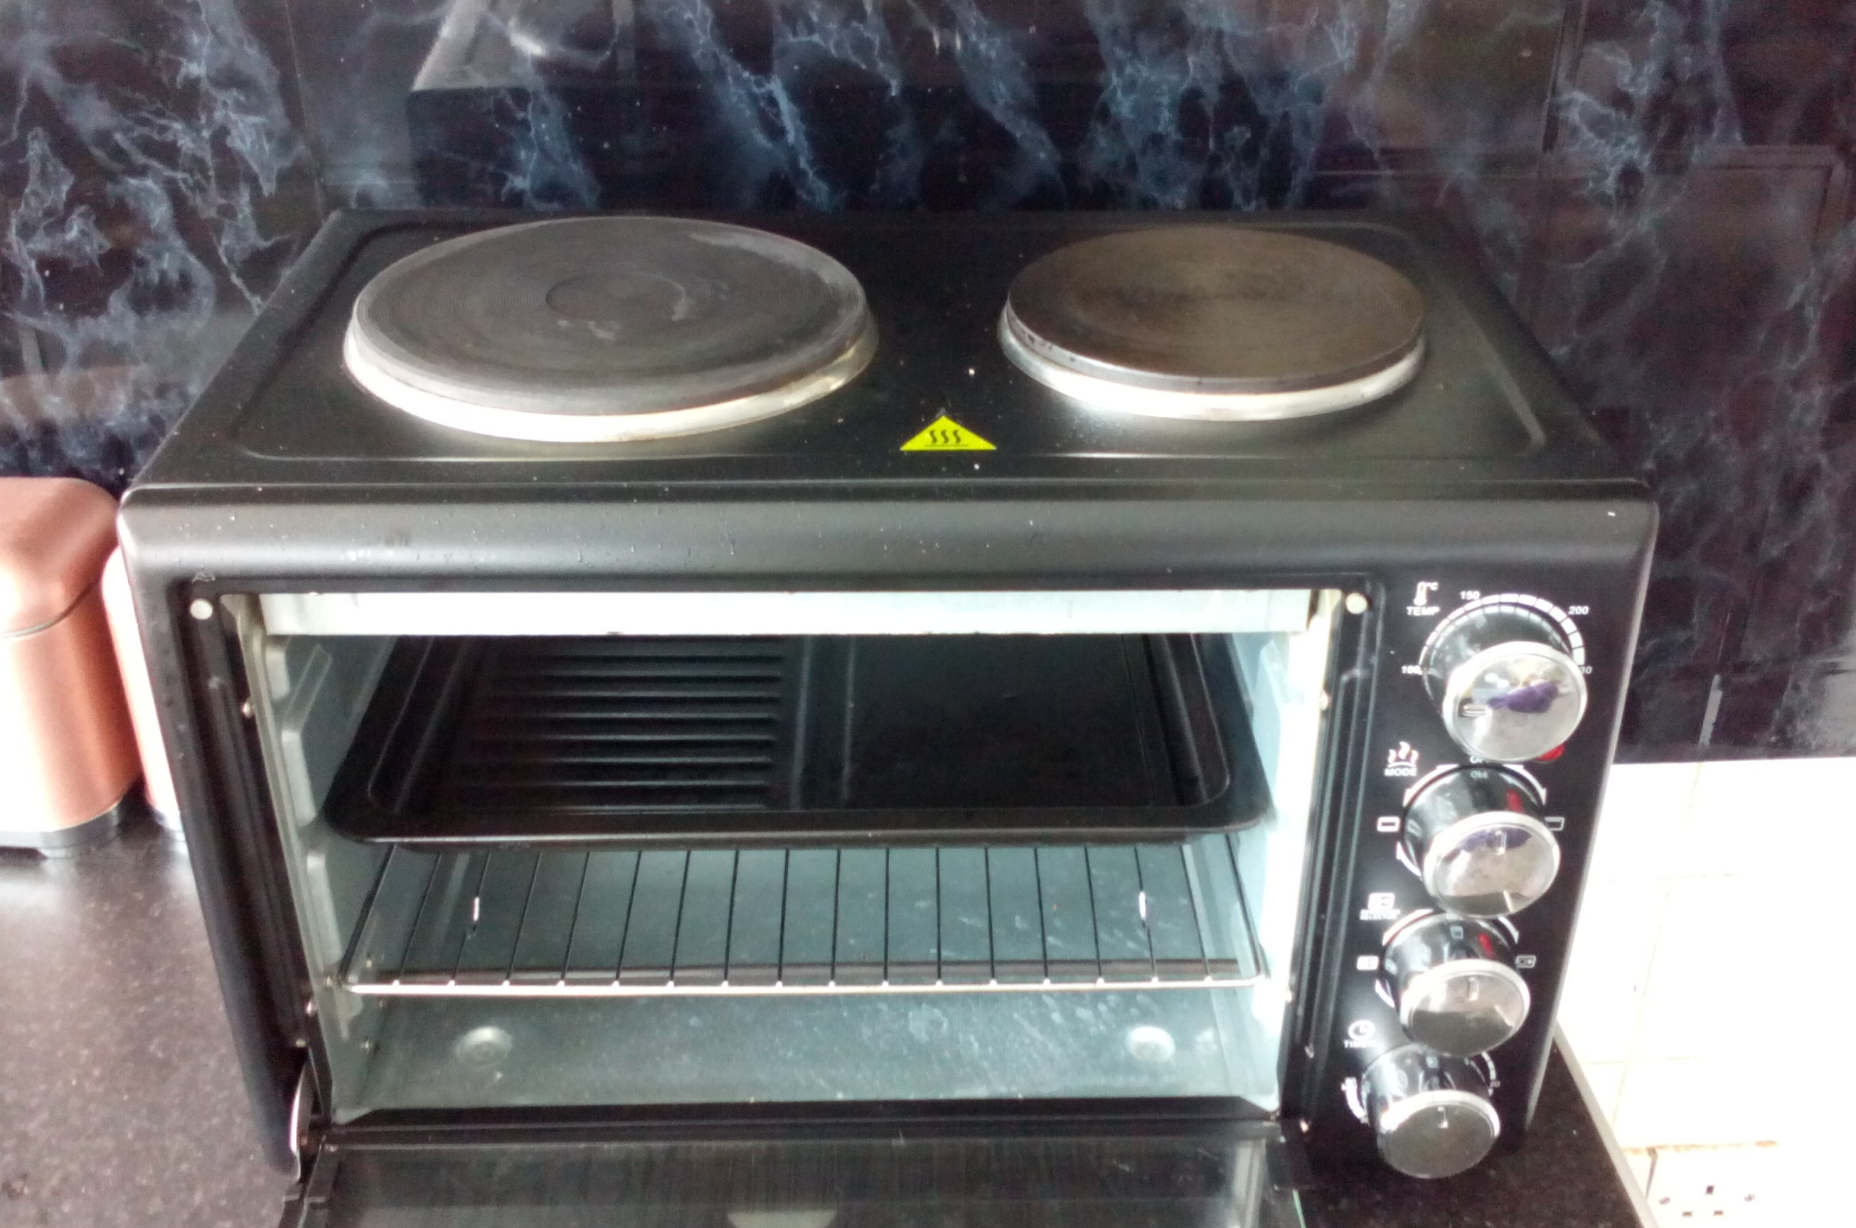 Salter compact oven with hobs